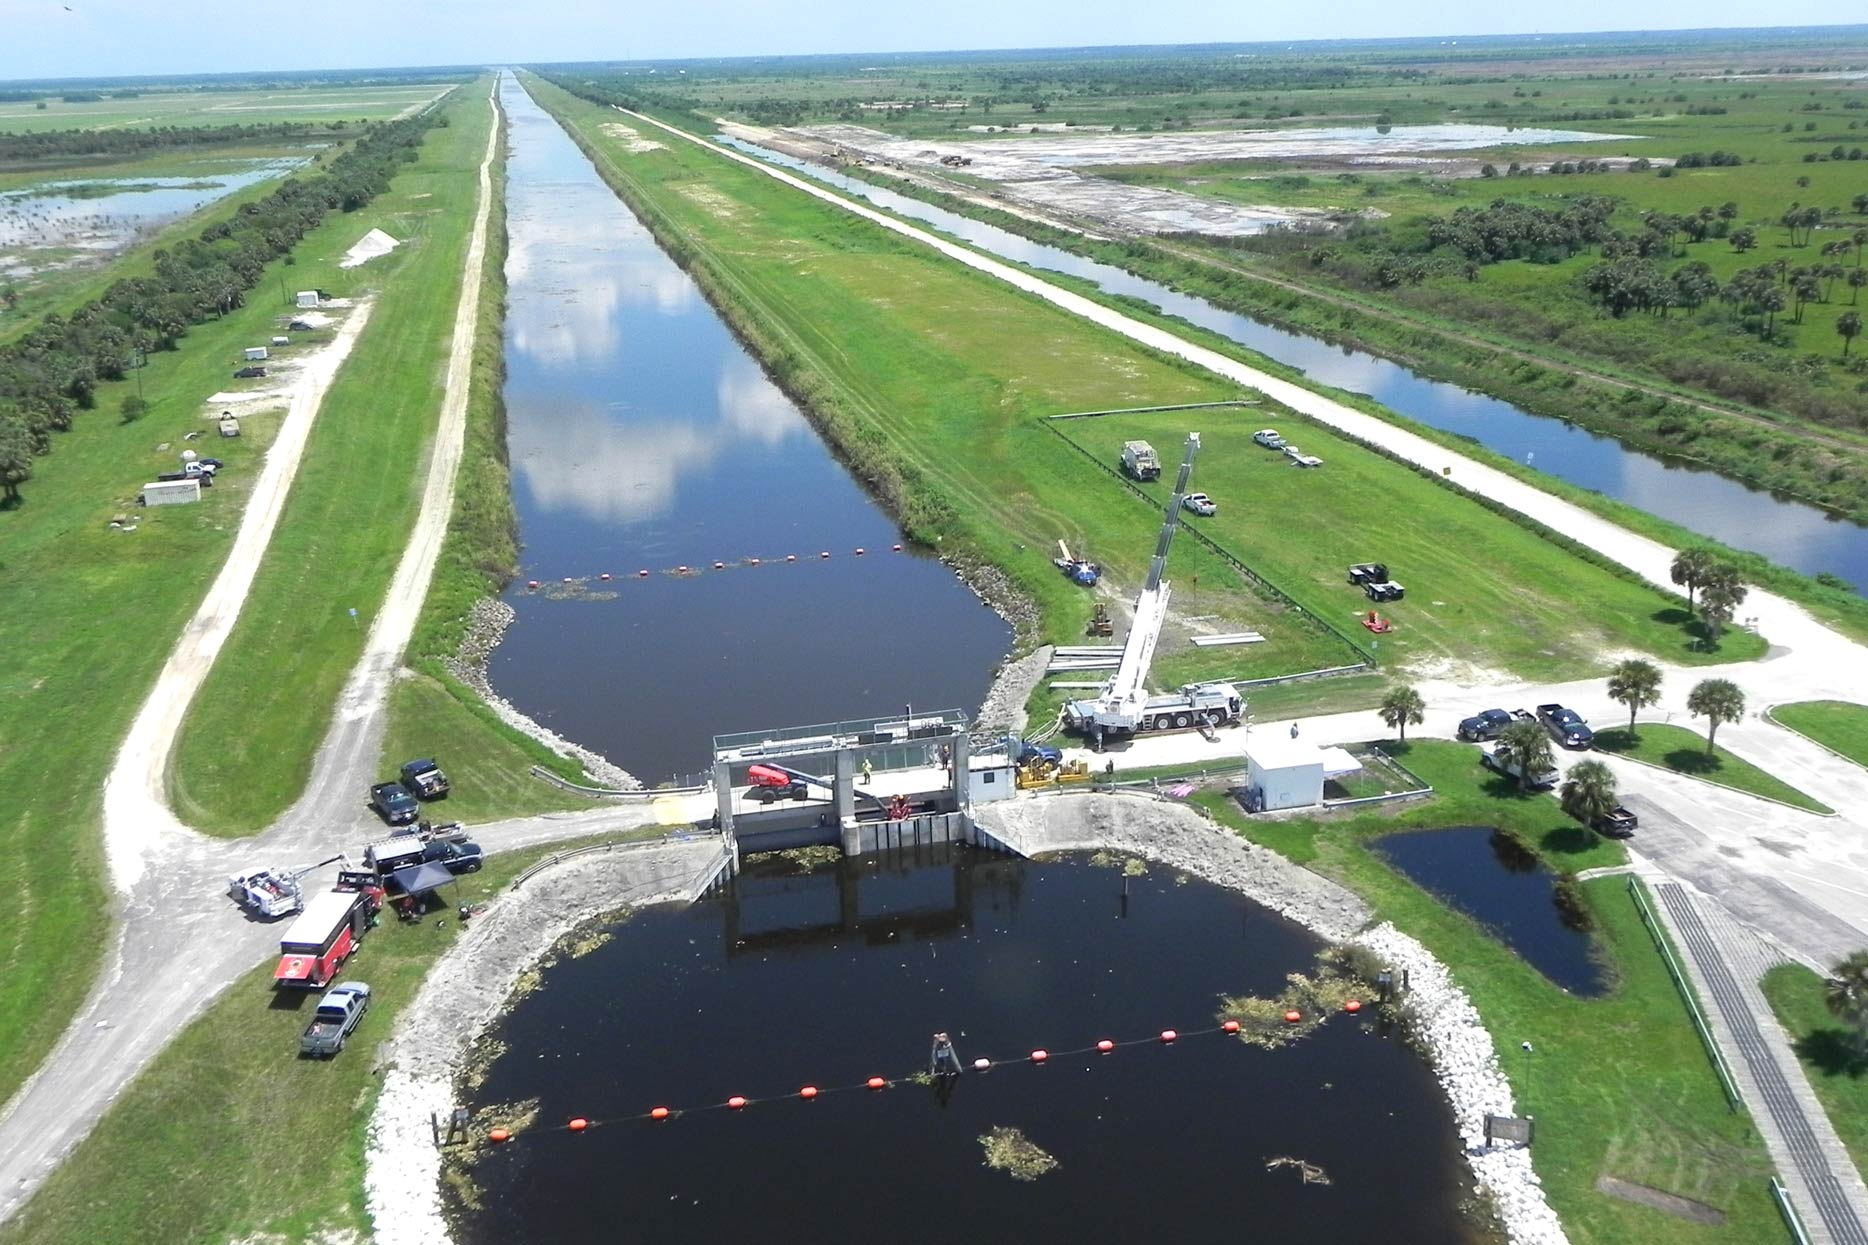 Aerial view of the c-54 canal structure